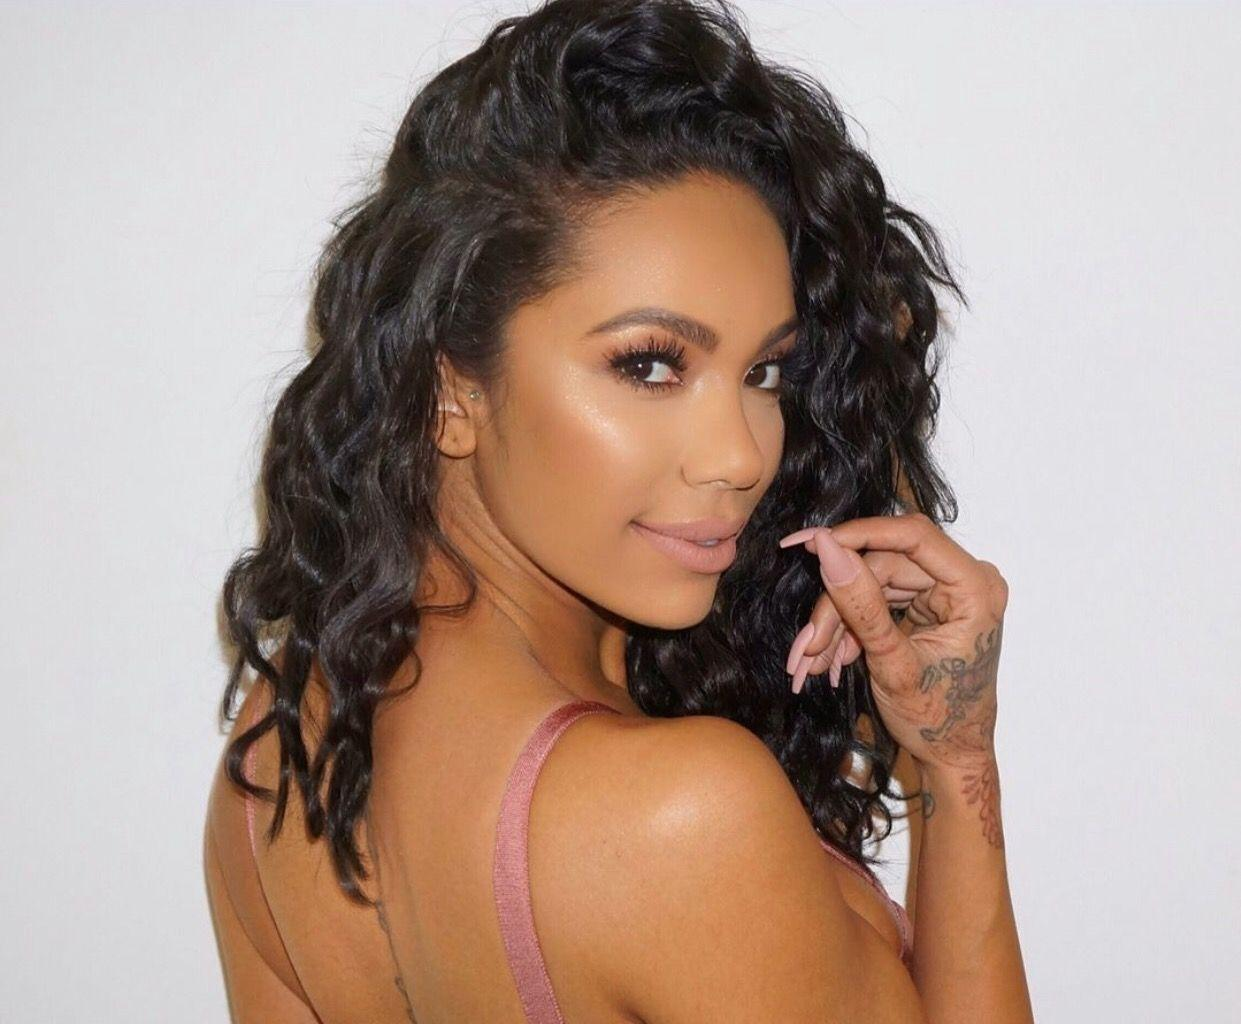 Erica Mena Poses Together With Her Daughter, Blasting A Hater For Accusing Her Of Something Terrible